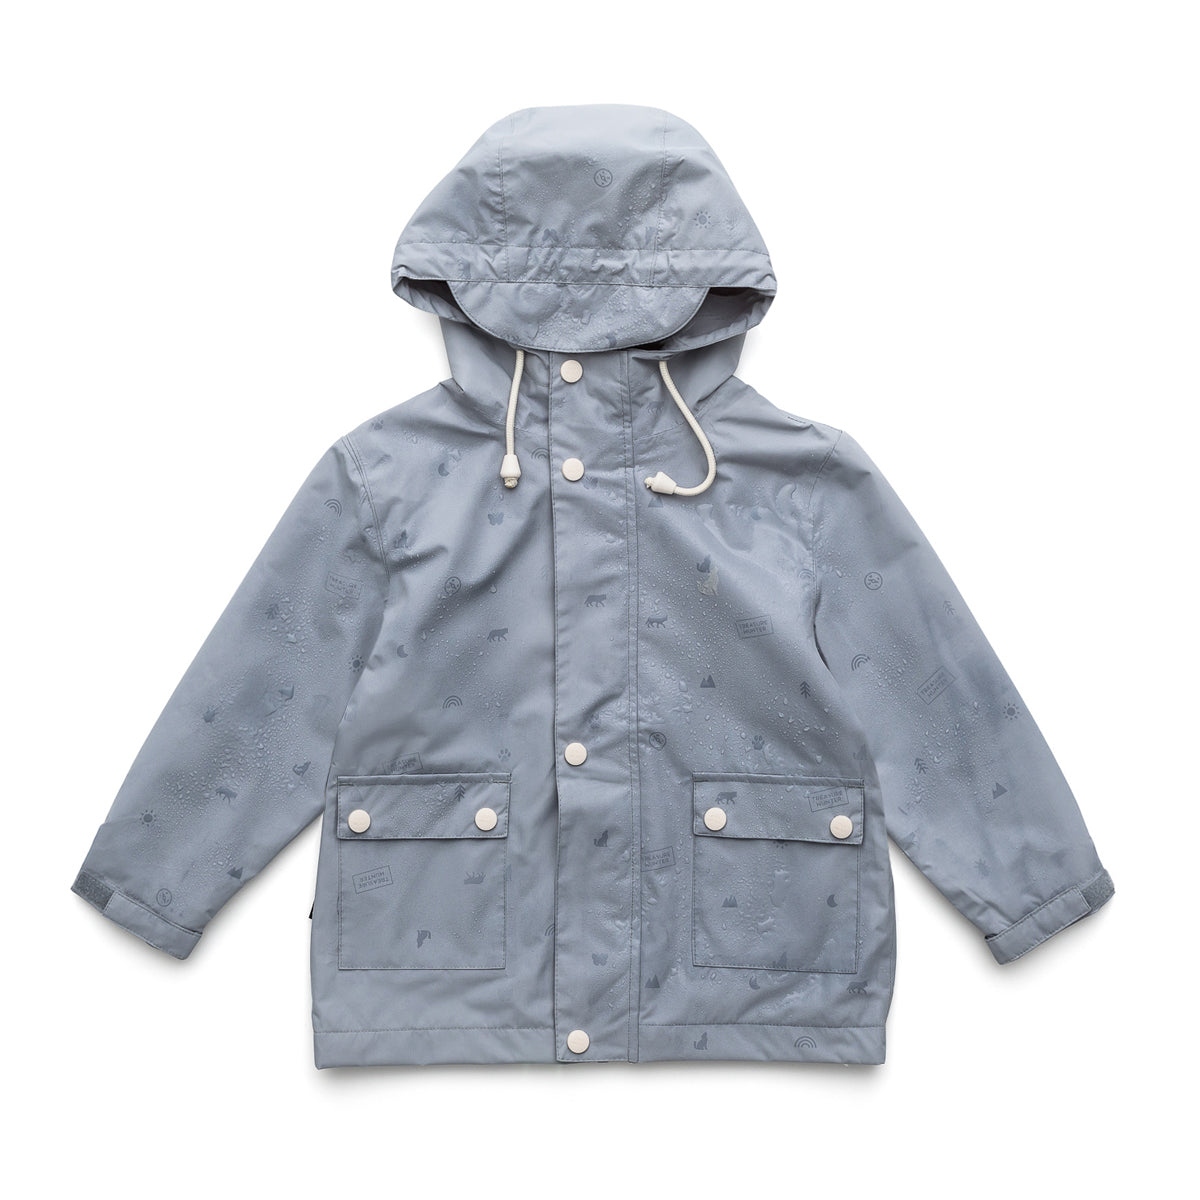 MAGIC JACKET Hunter Blue 1-10yrs